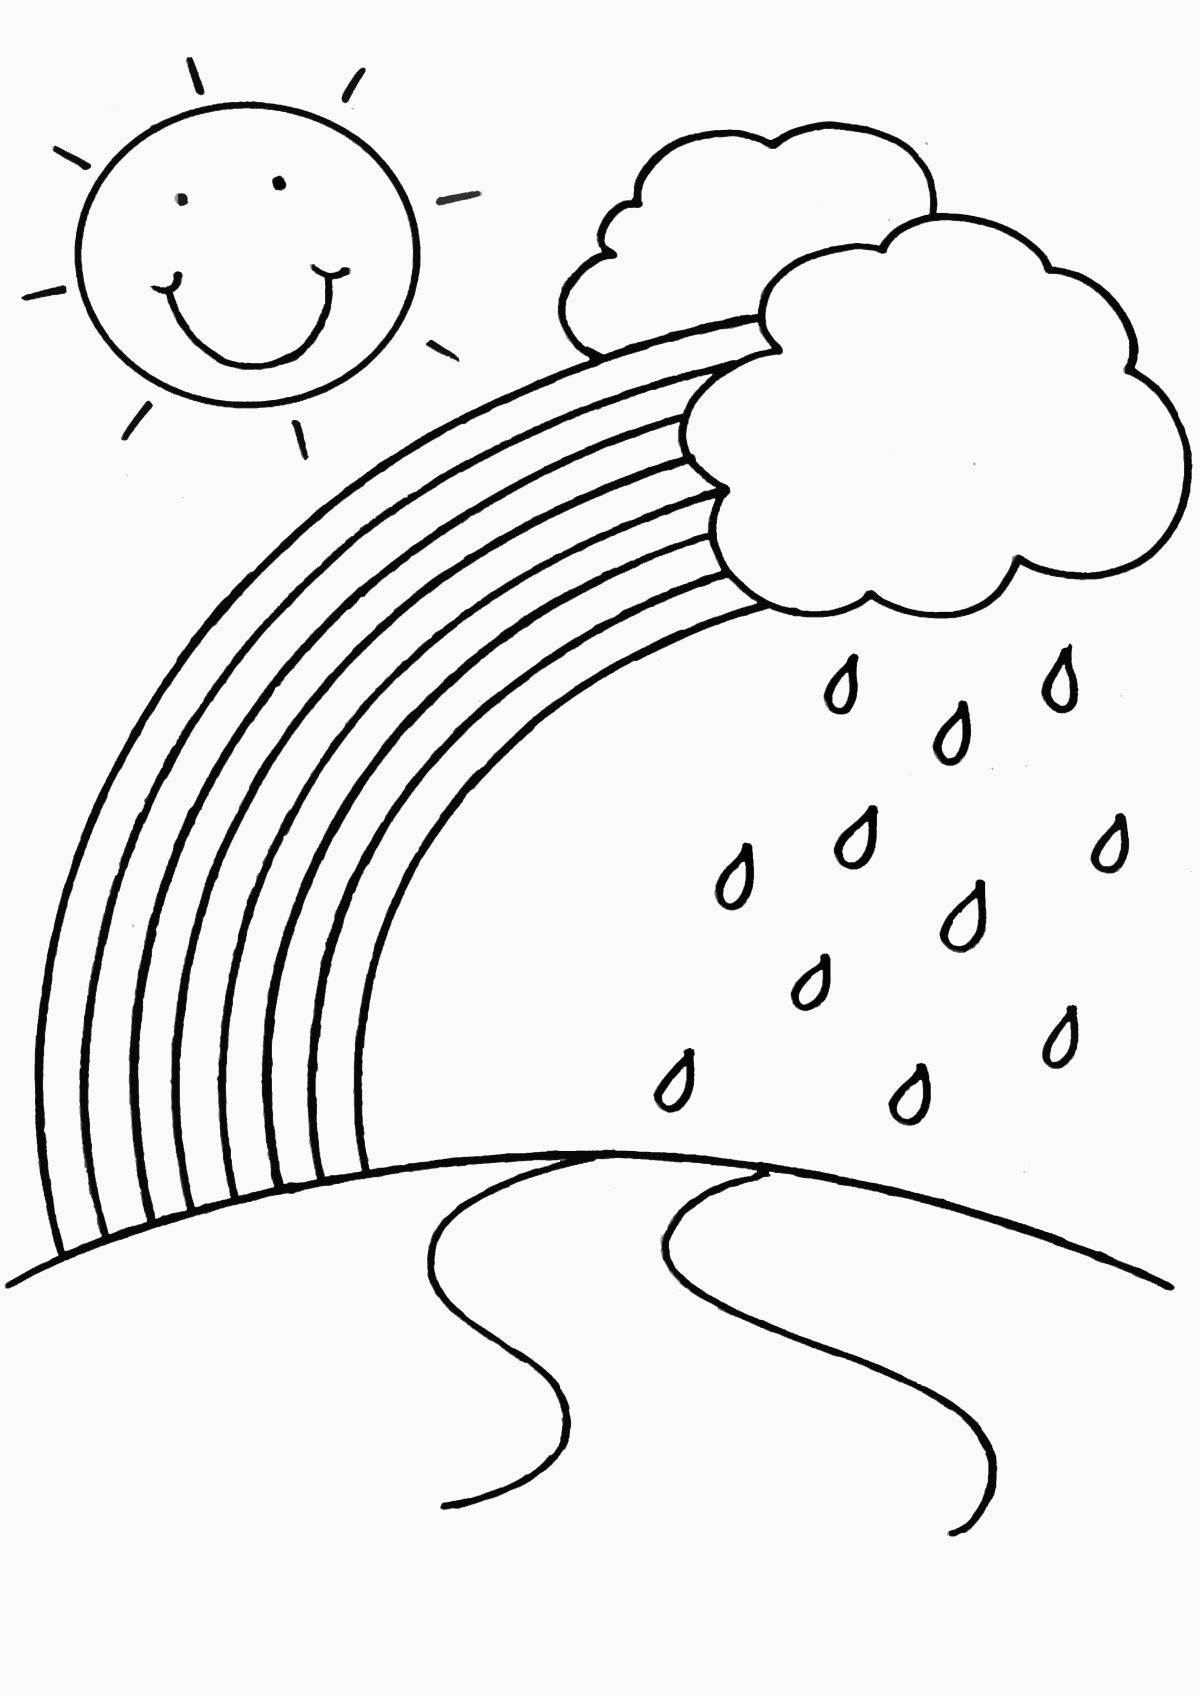 Rainbow Coloring Page Printable Awesome Rainbow Coloring Pages For Childrens Printable Fo Kindergarten Coloring Pages Spring Coloring Pages Free Coloring Pages